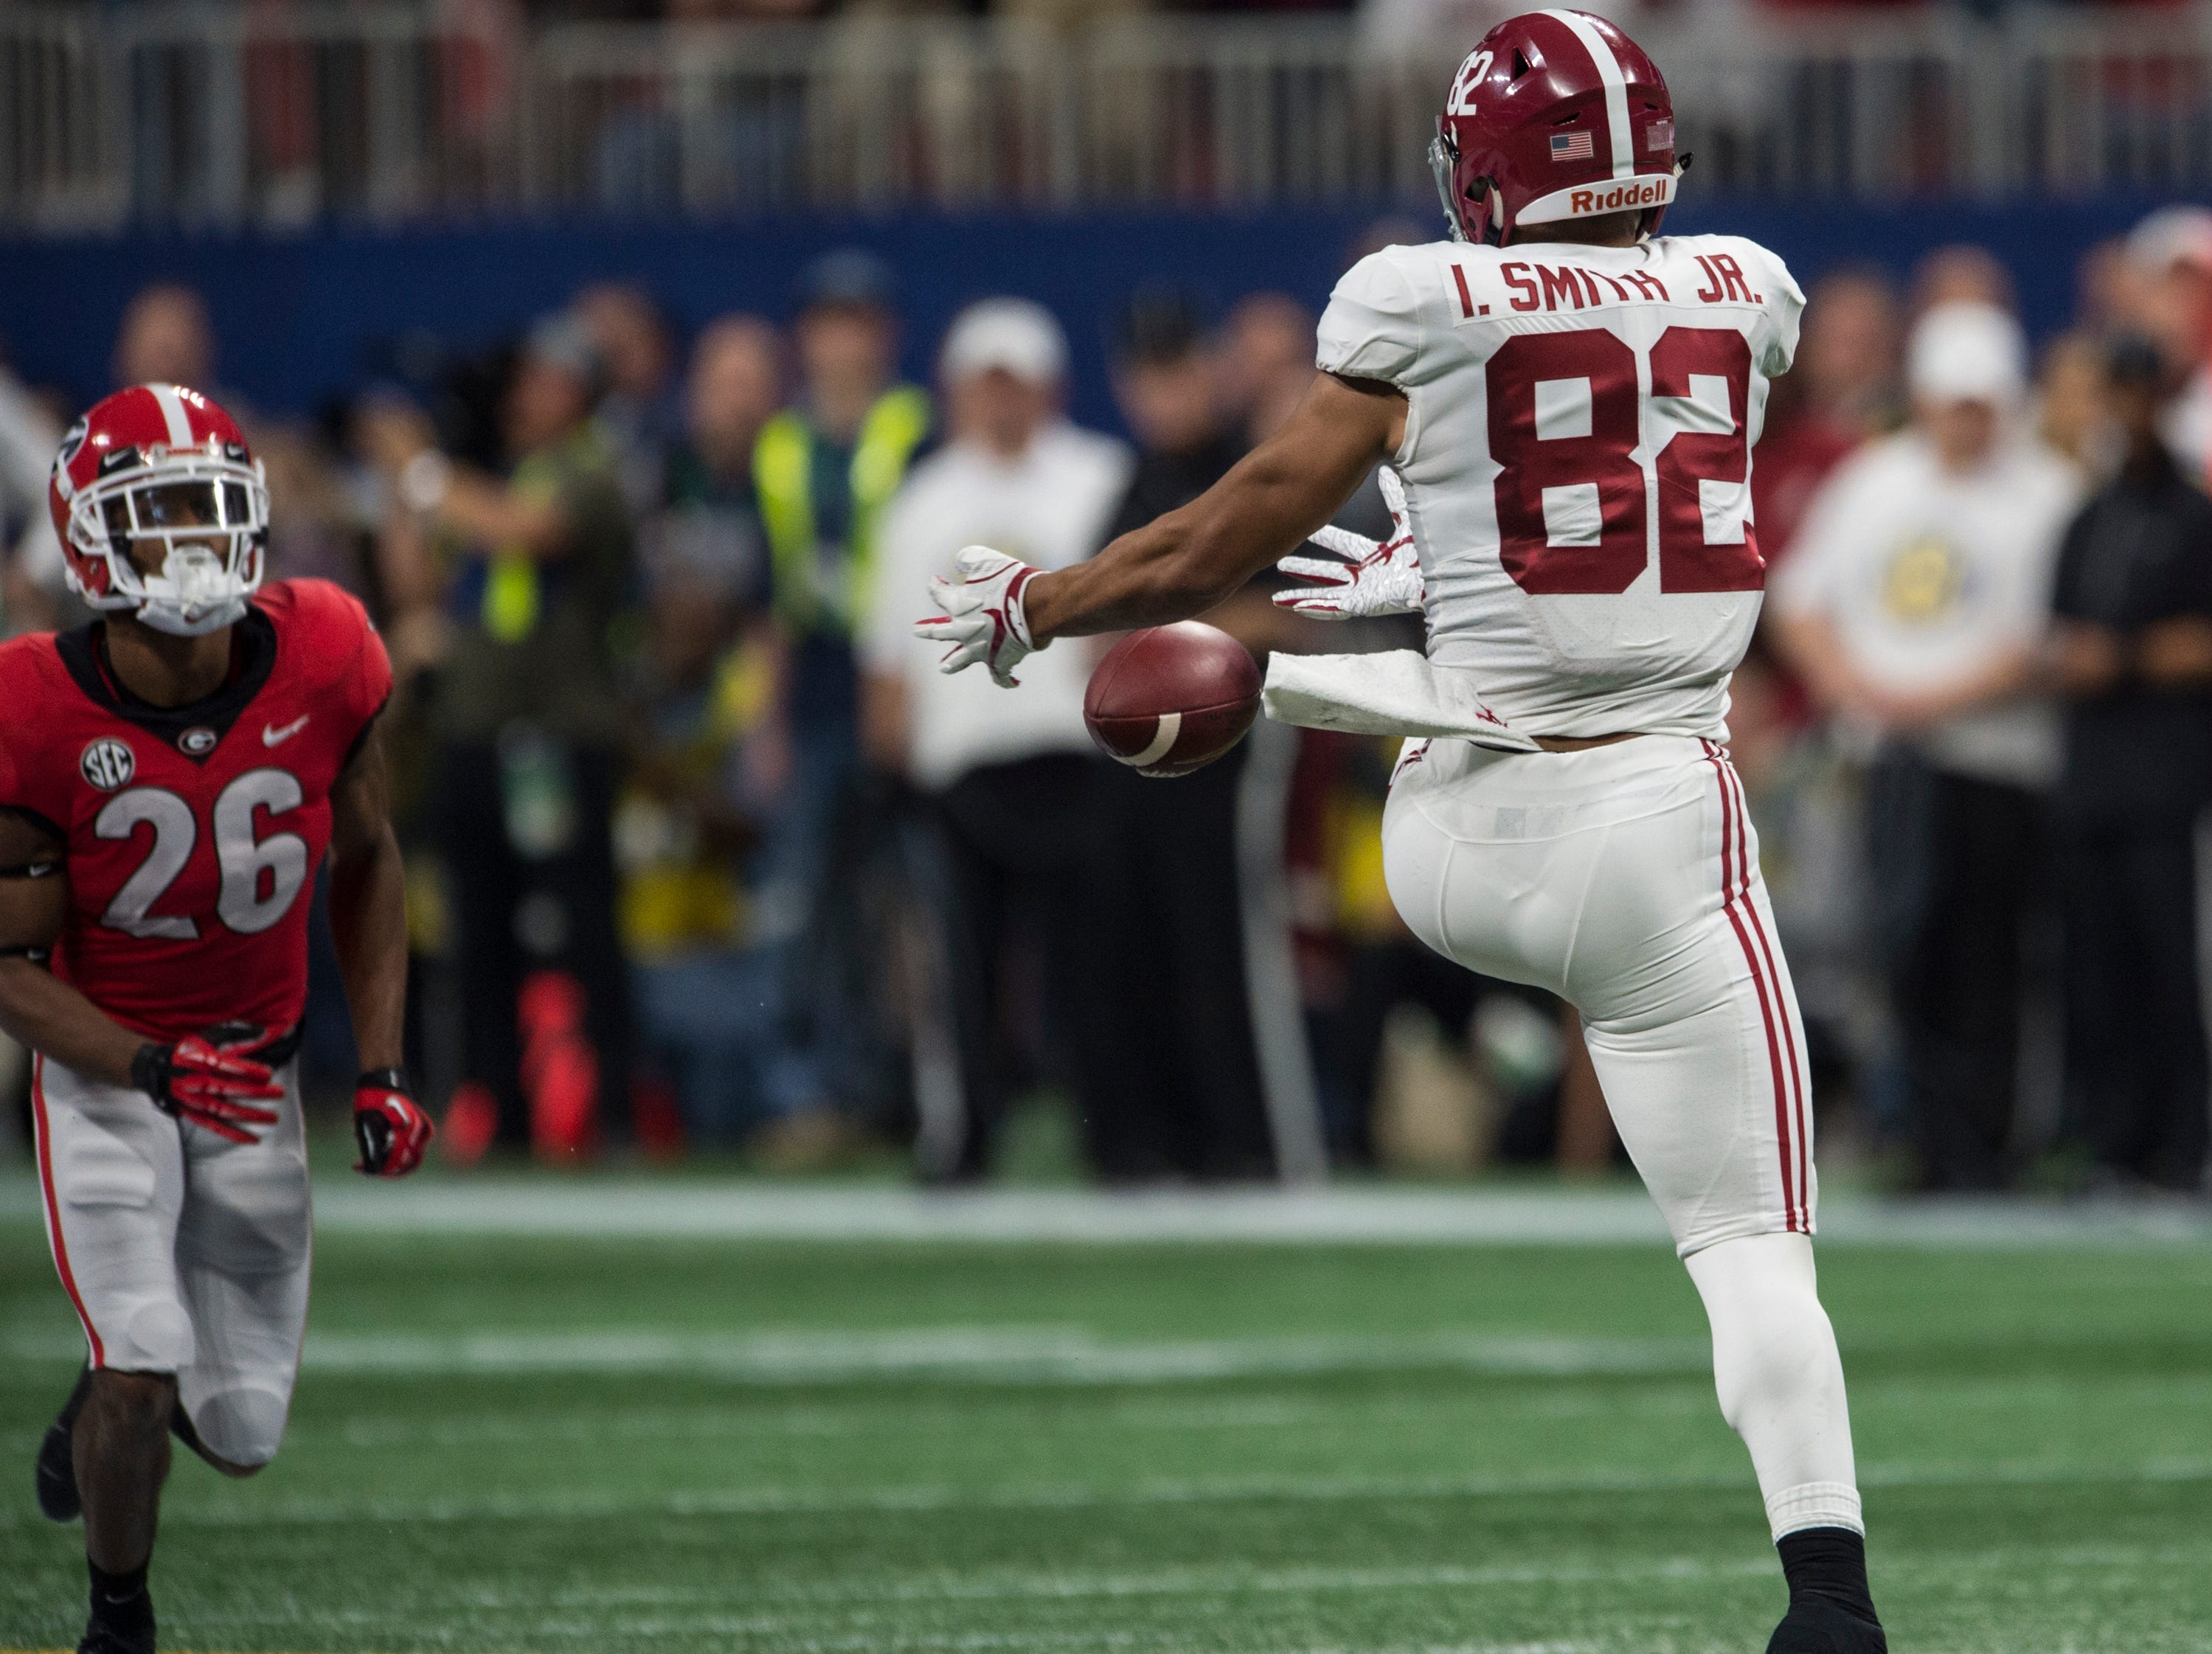 Alabama tight end Irv Smith Jr. (82) drops an open pass during the SEC Championship game at Mercedes-Benz Stadium in Atlanta, Ga., on Saturday Dec. 1, 2018. Georgia leads Alabama 21-14 at halftime.